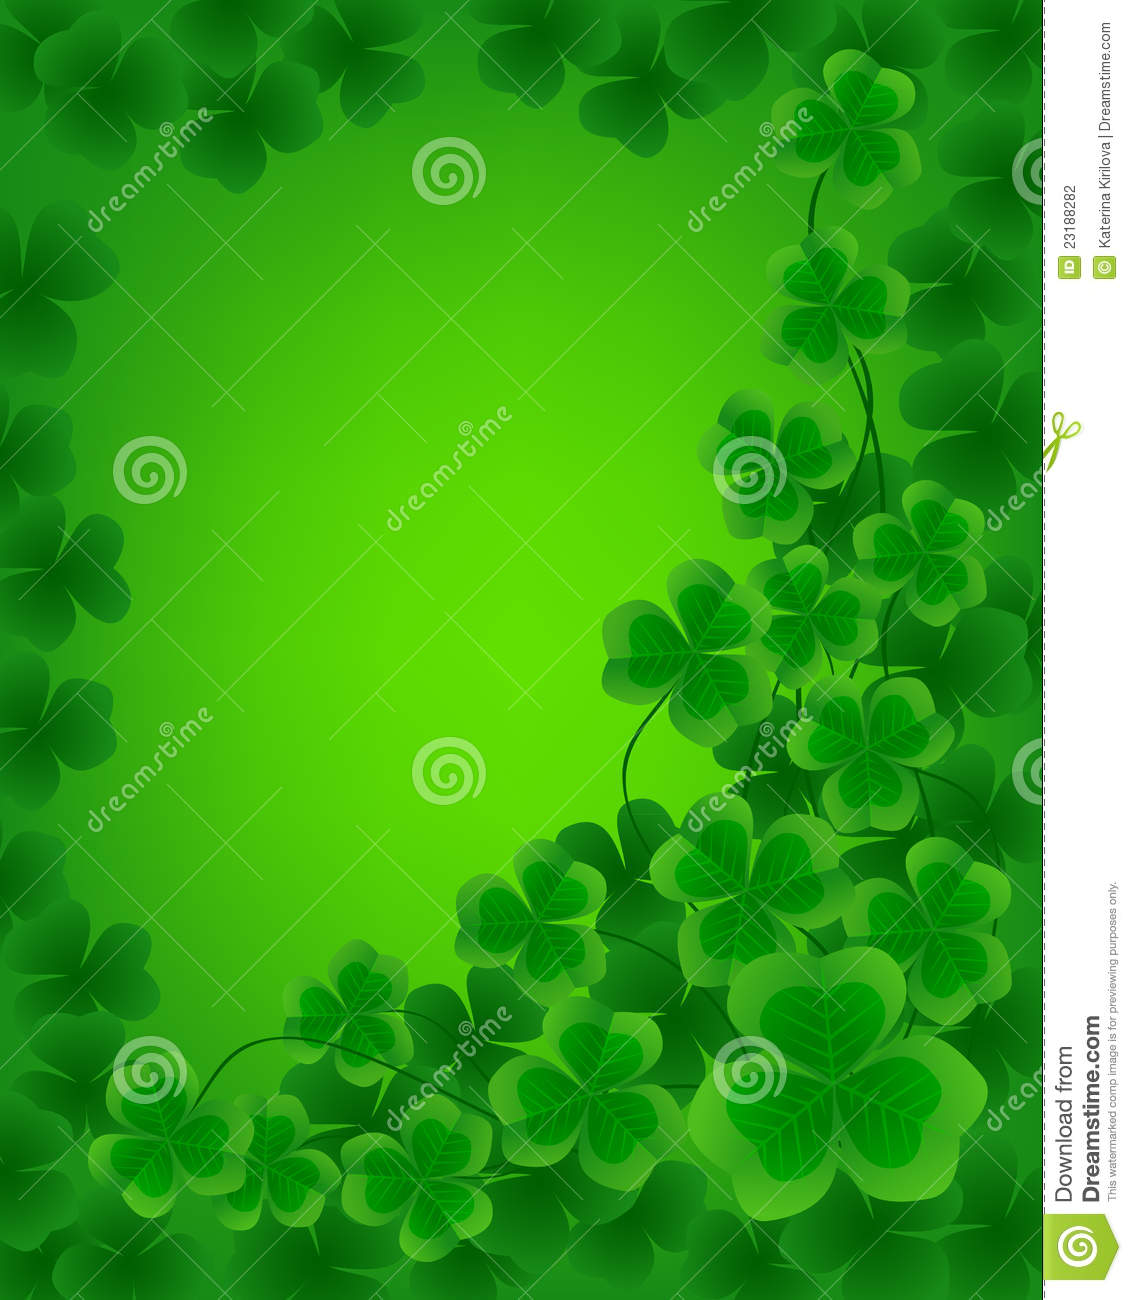 St. Patrick Day Background Stock Photography - Image: 23188282